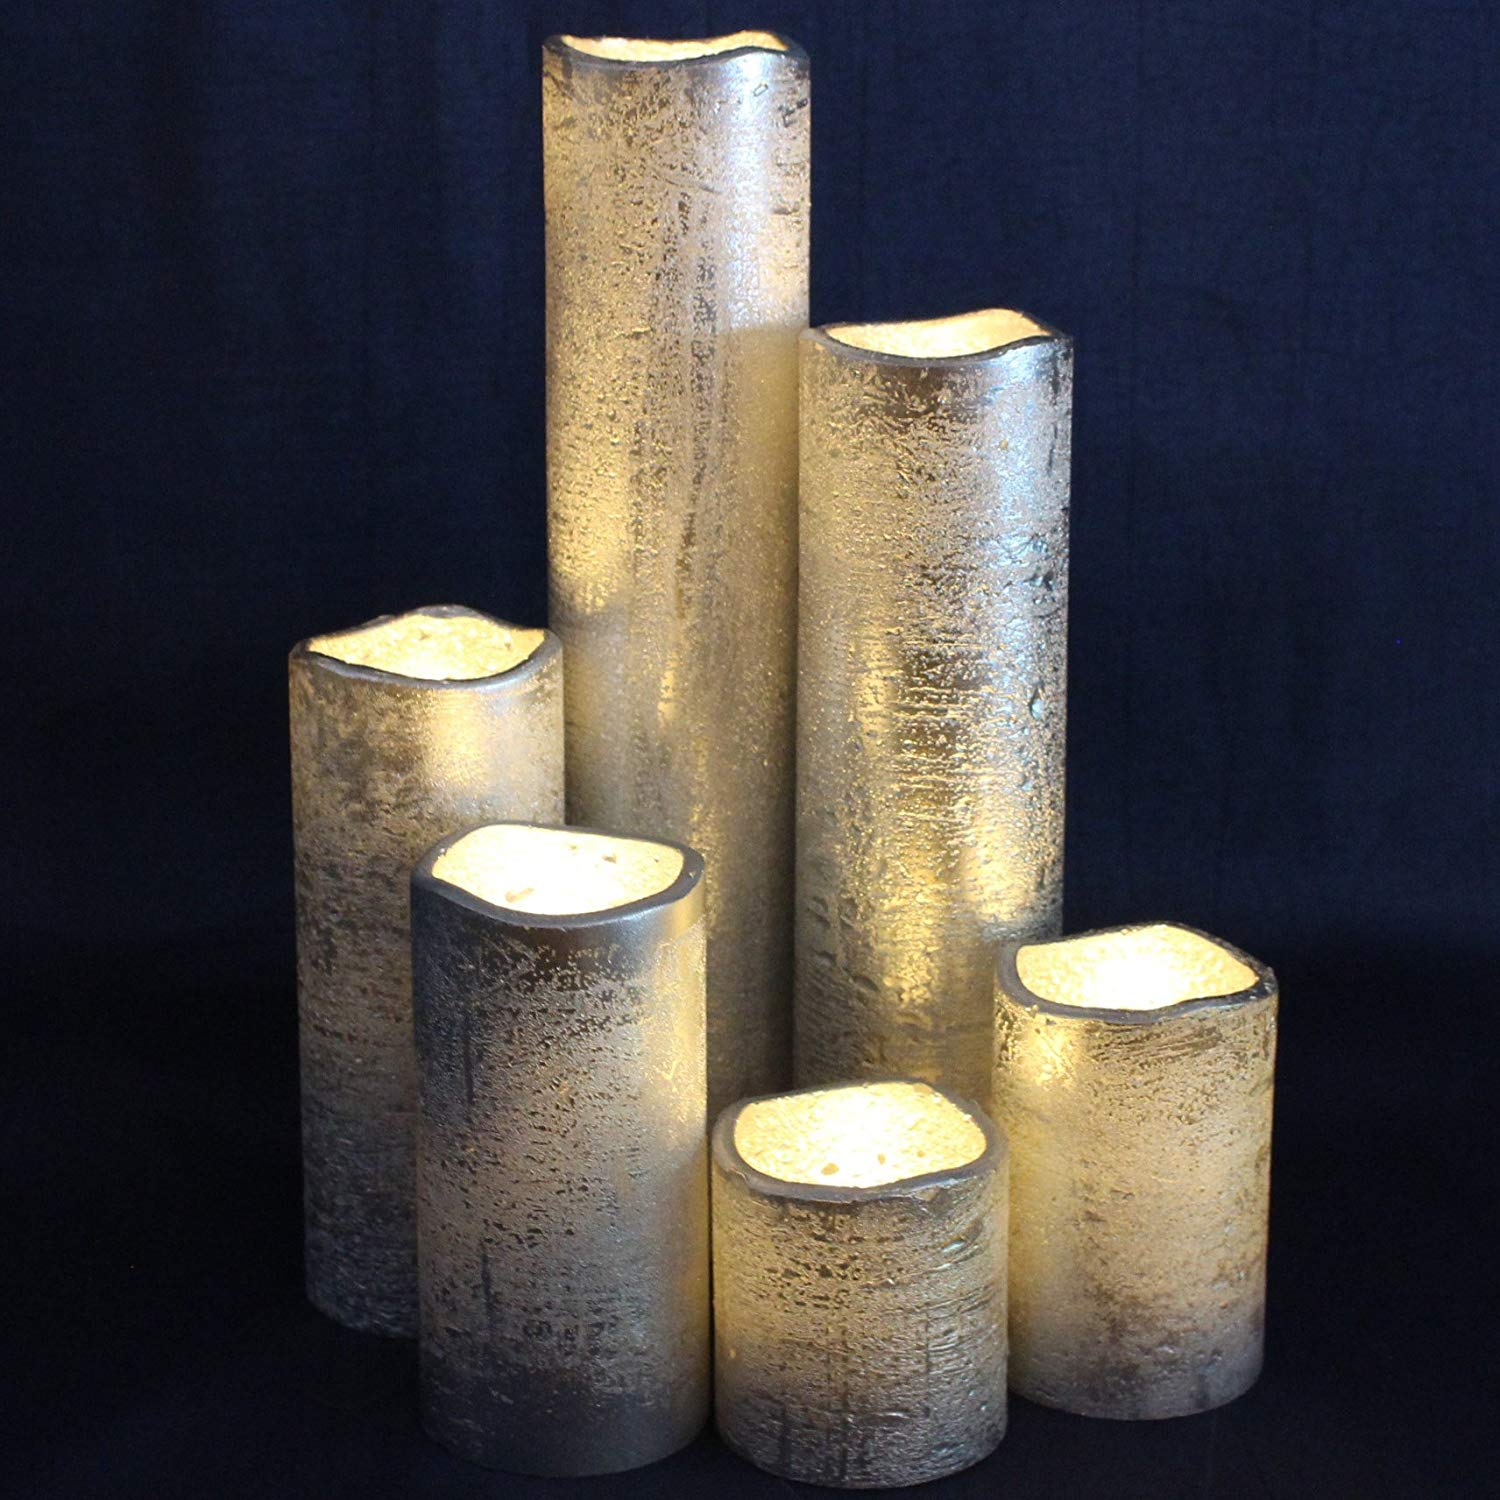 "LED Lytes Flameless Timer LED Candles Slim Set of 6, 2"" Wide and 2""- 9"" Tall, Silver Coated Wax and Flickering Warm White Flame for Home and Wedding Decor"